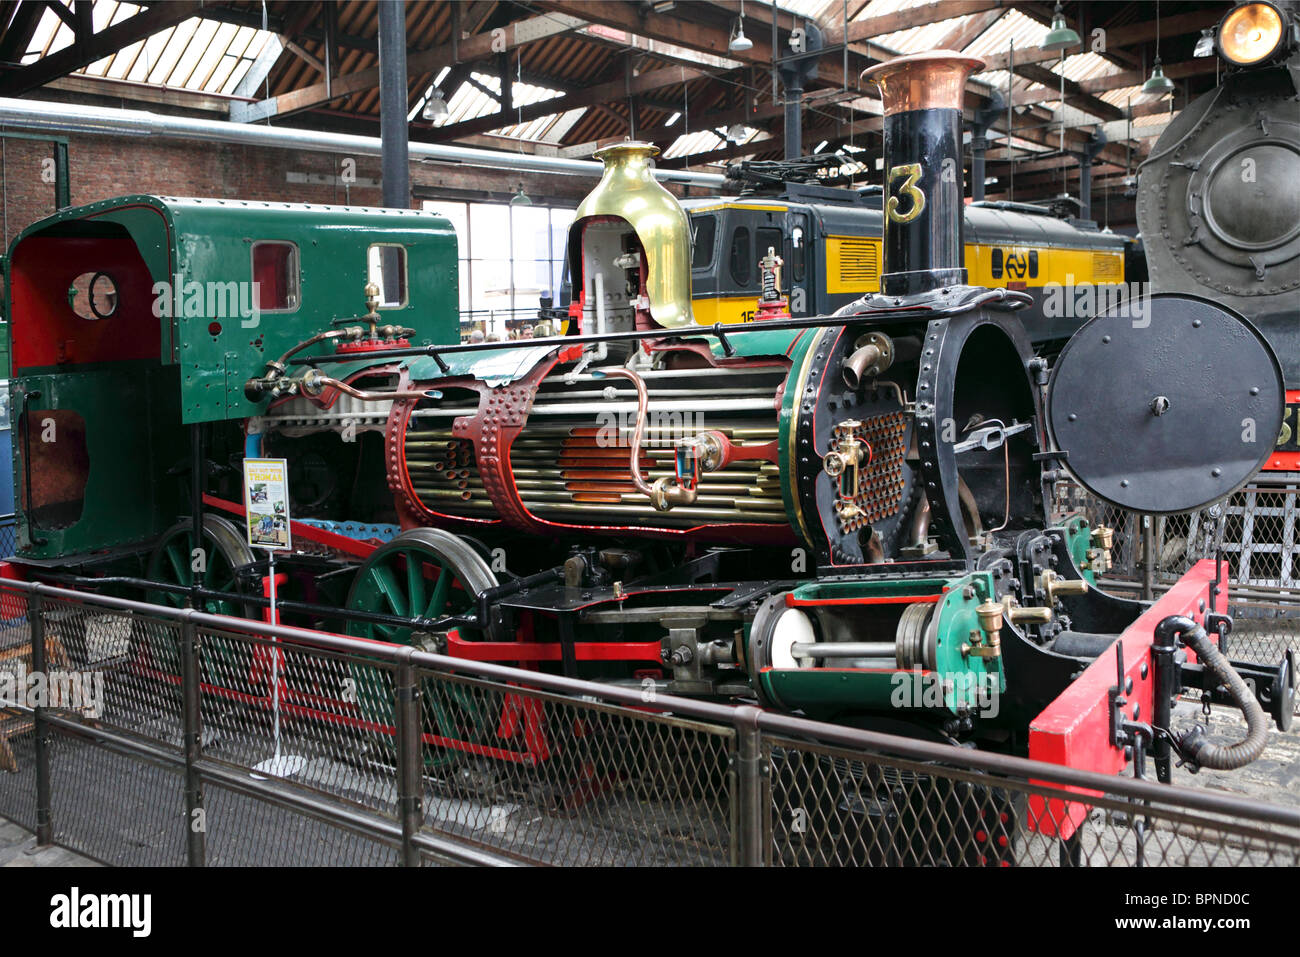 Beyer,Peacock & Company steam locomotive cutaway exposing multi ...